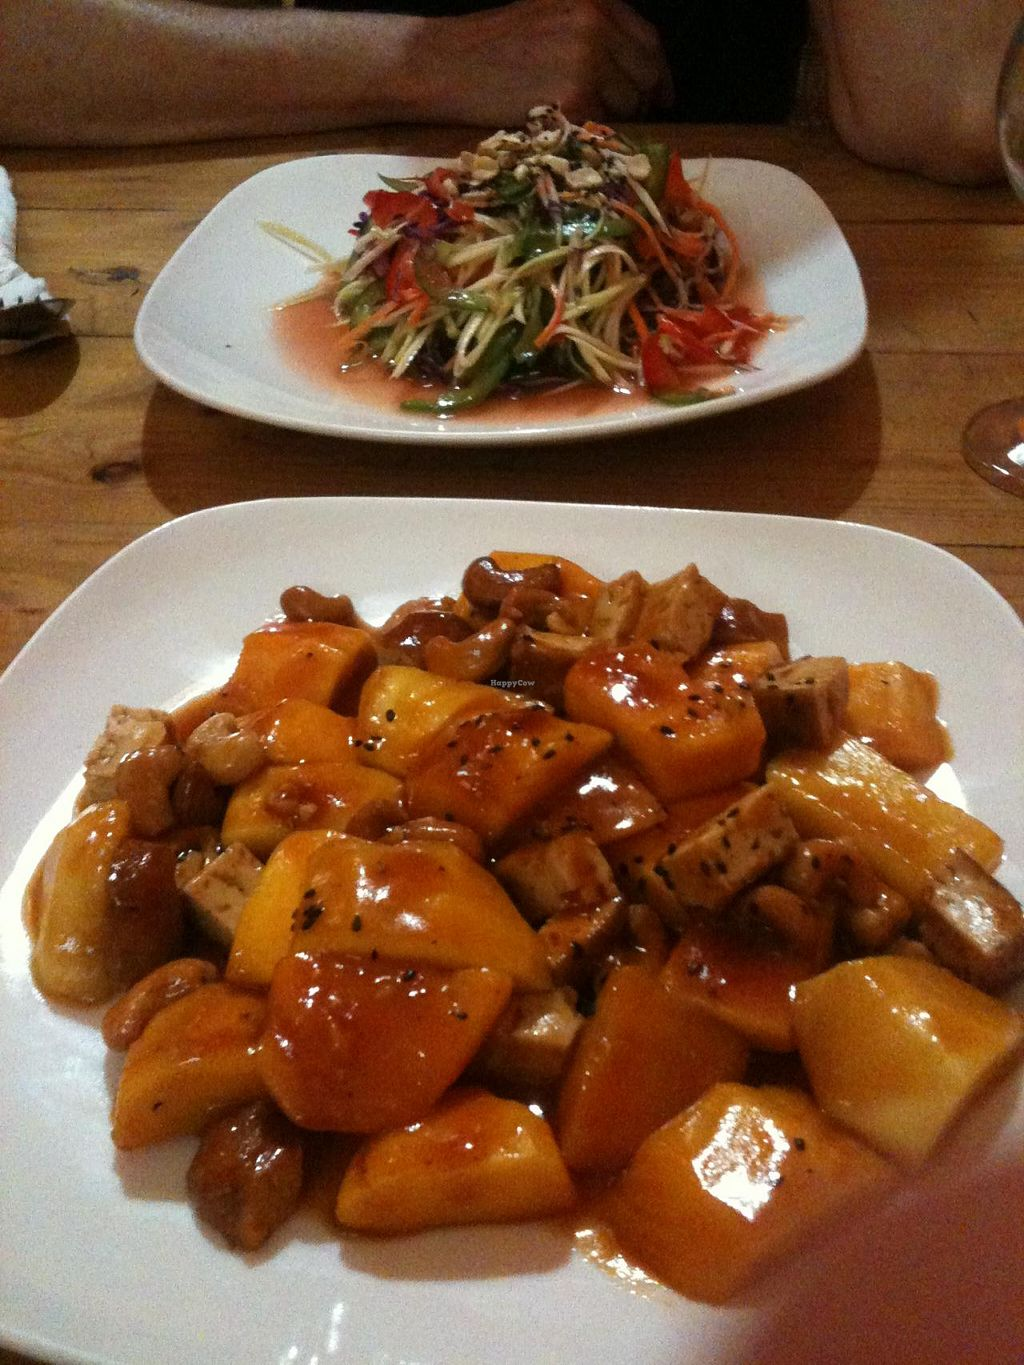 """Photo of Cafe Soleil  by <a href=""""/members/profile/heloisepe"""">heloisepe</a> <br/>Cashew, mango, tofu in my plate ; salad in my friend's plate. 3-4$ dollars for each <br/> July 27, 2015  - <a href='/contact/abuse/image/33811/111145'>Report</a>"""